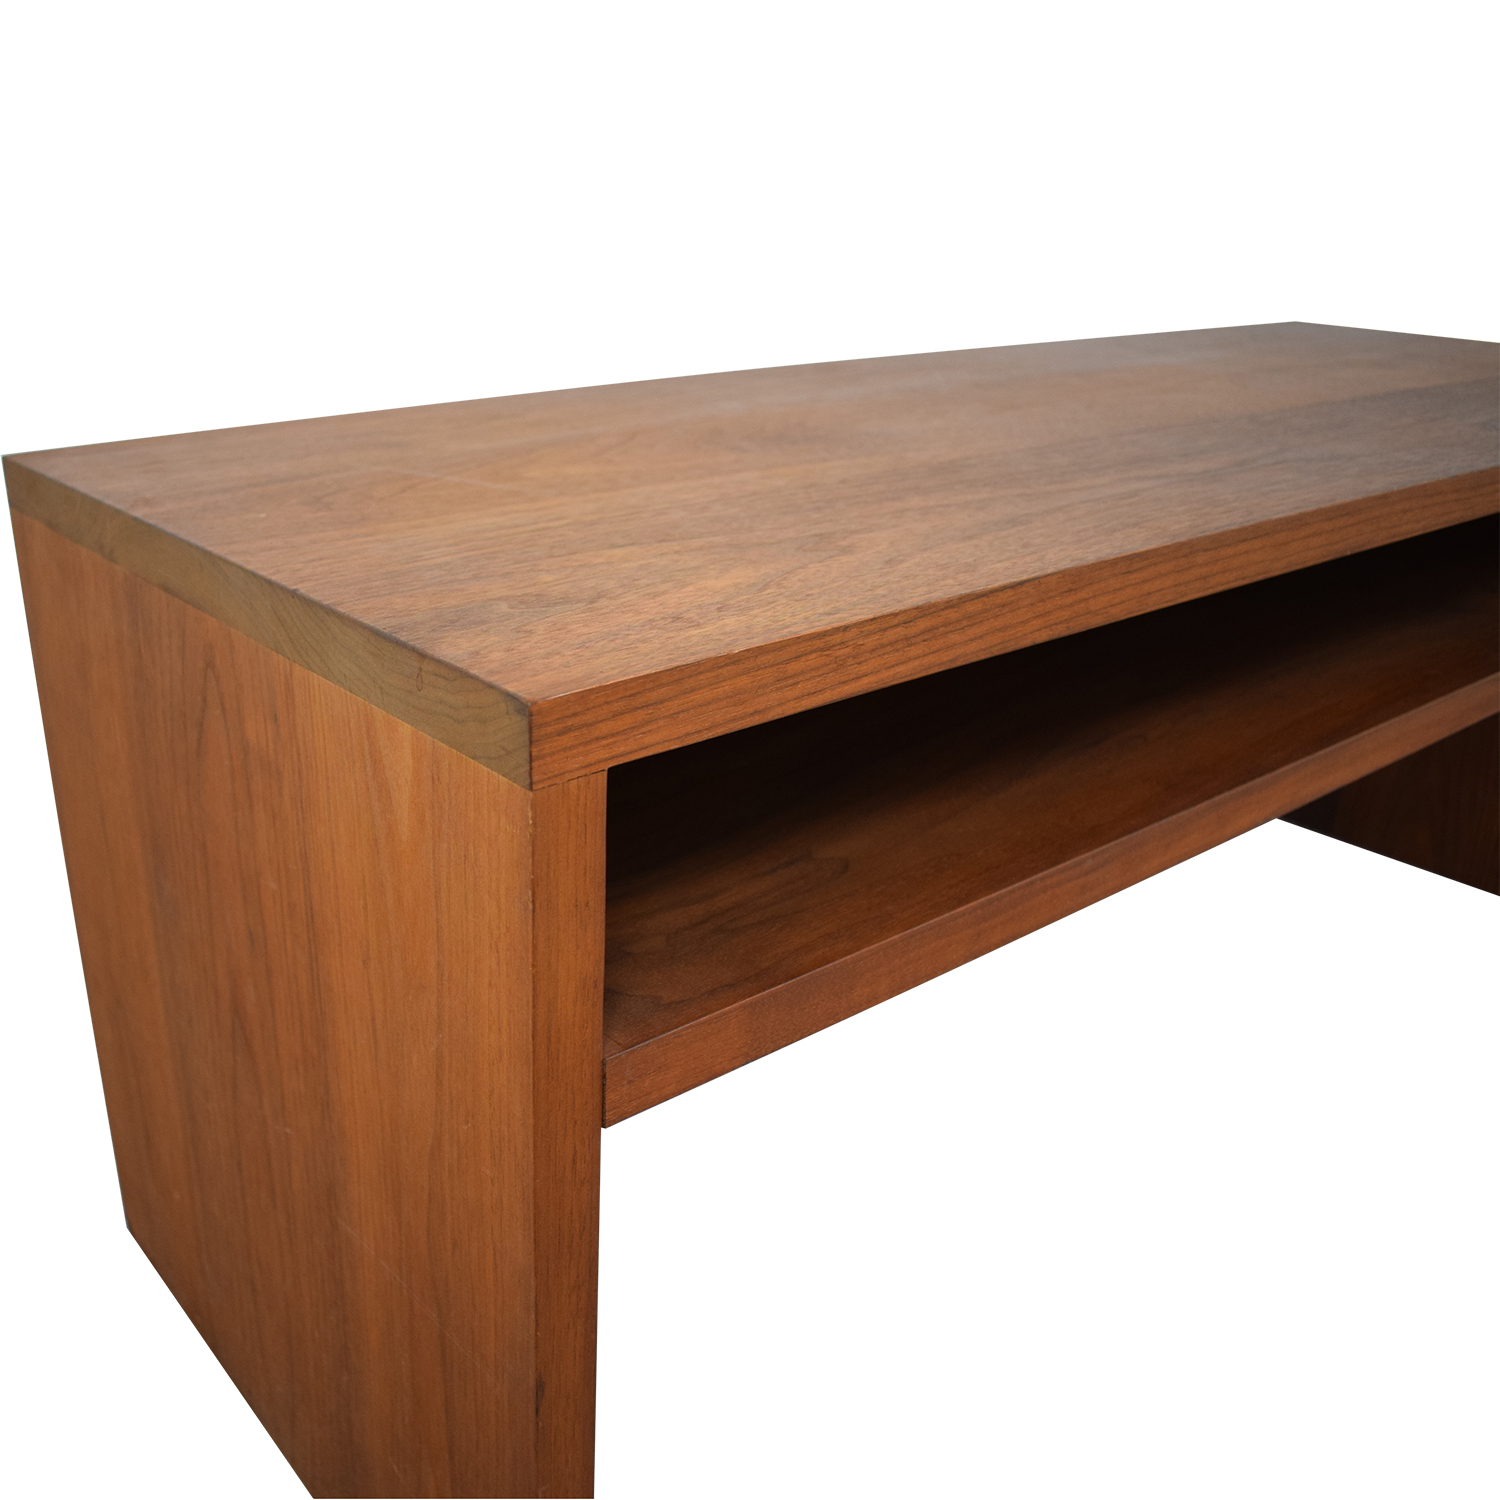 shop  Custom Solid Walnut Coffee Table with Enclosed Shelf Space online